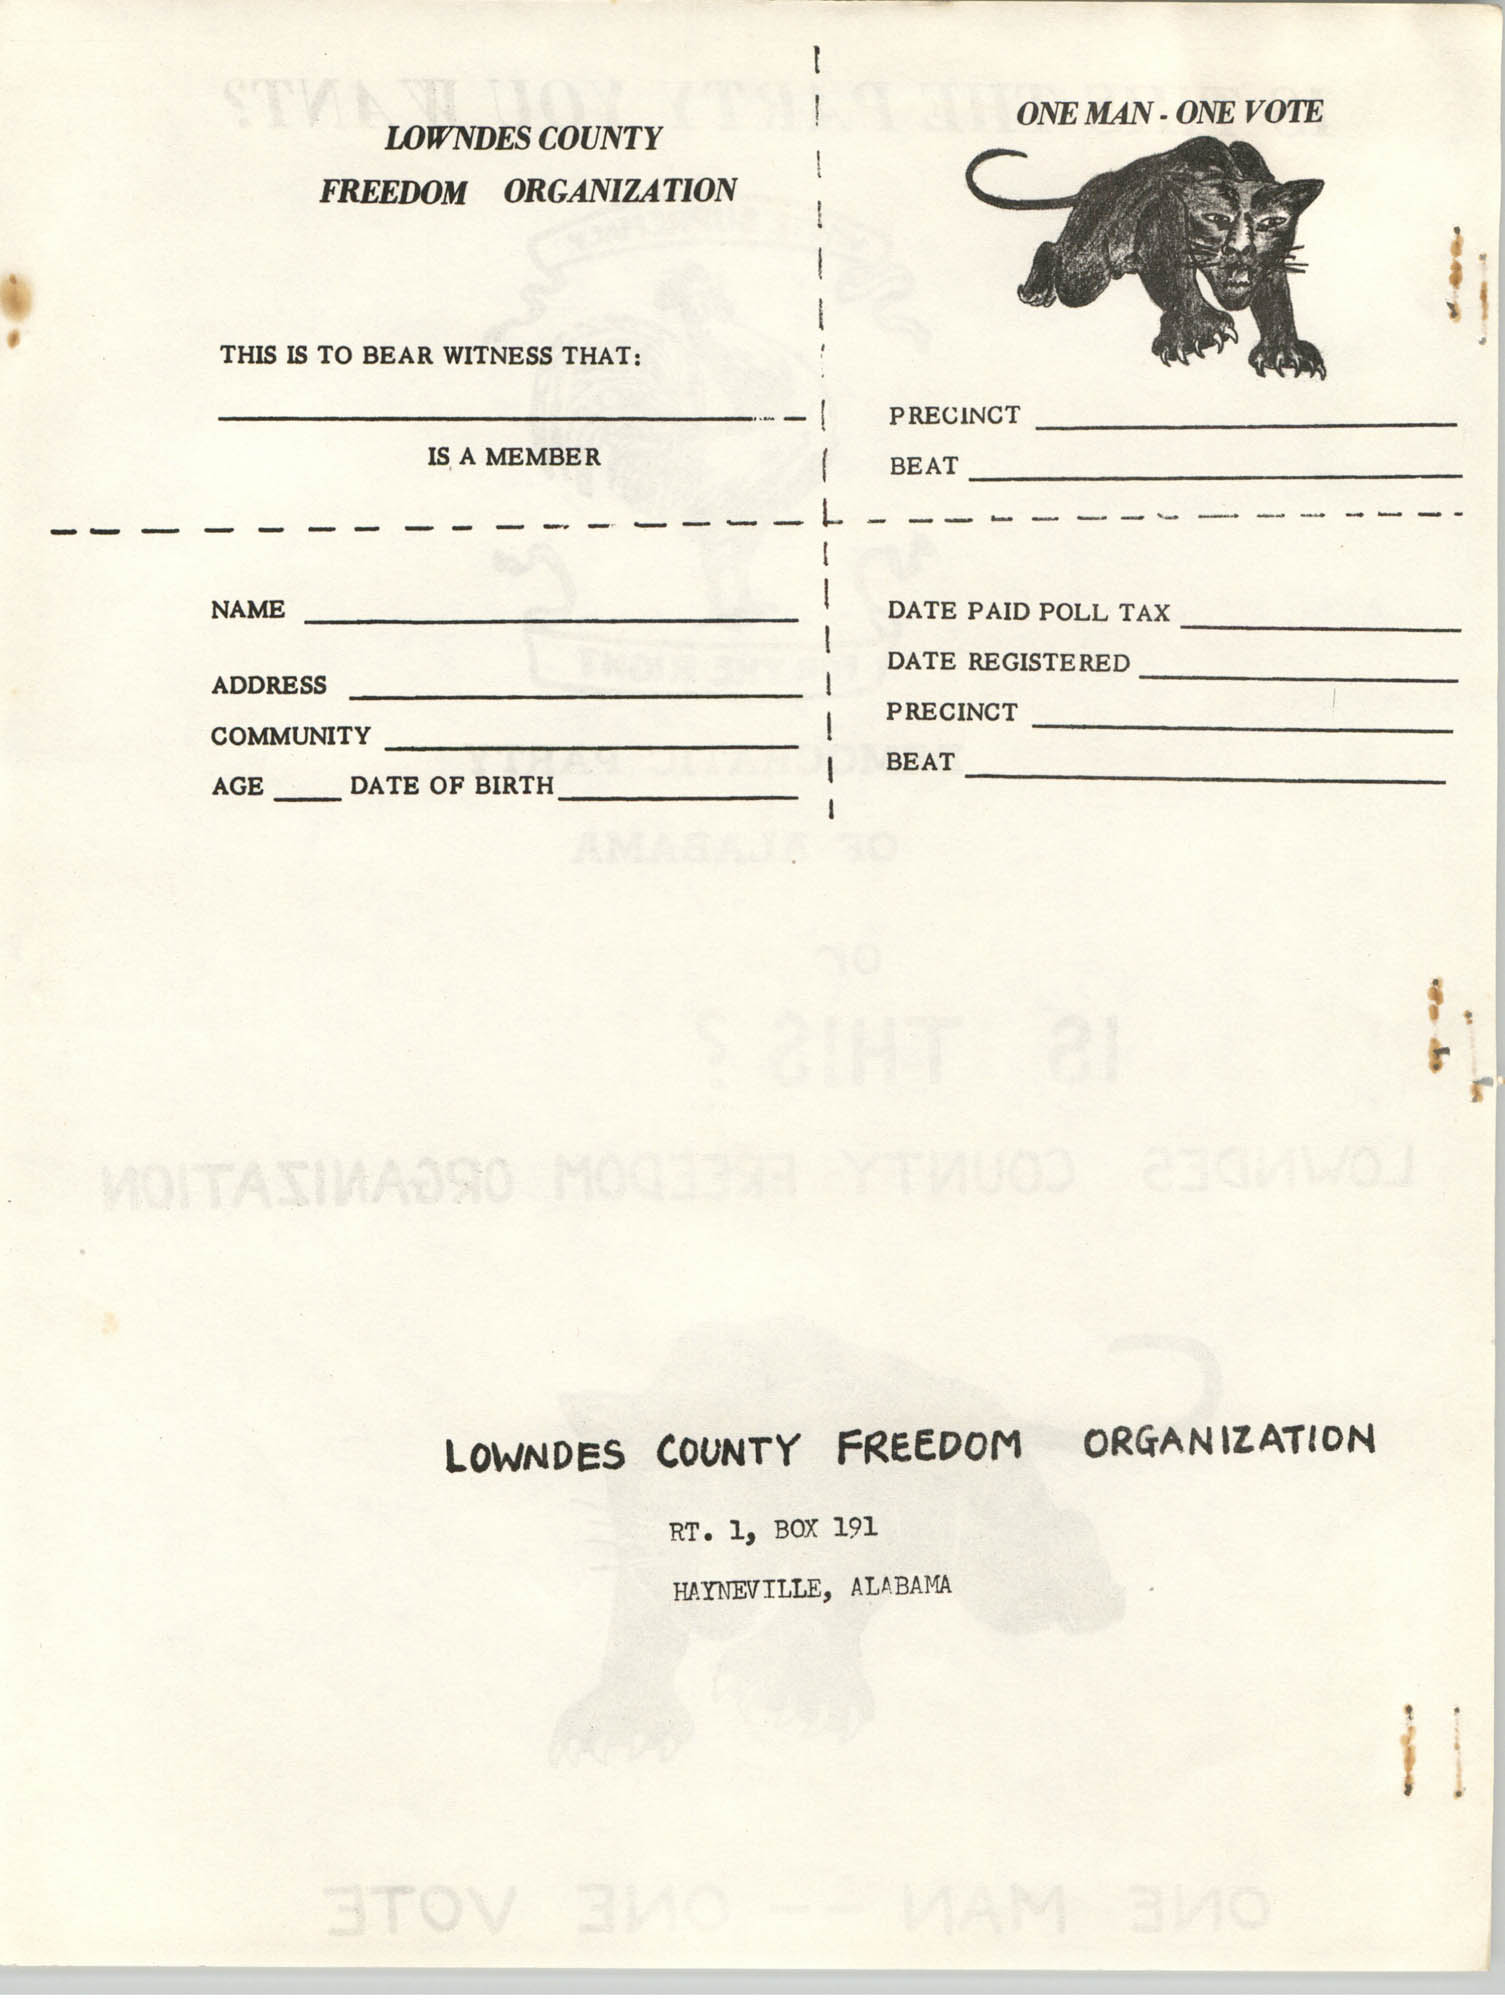 Lowndes County Freedom Organization Voting Pamphlet, Page 2